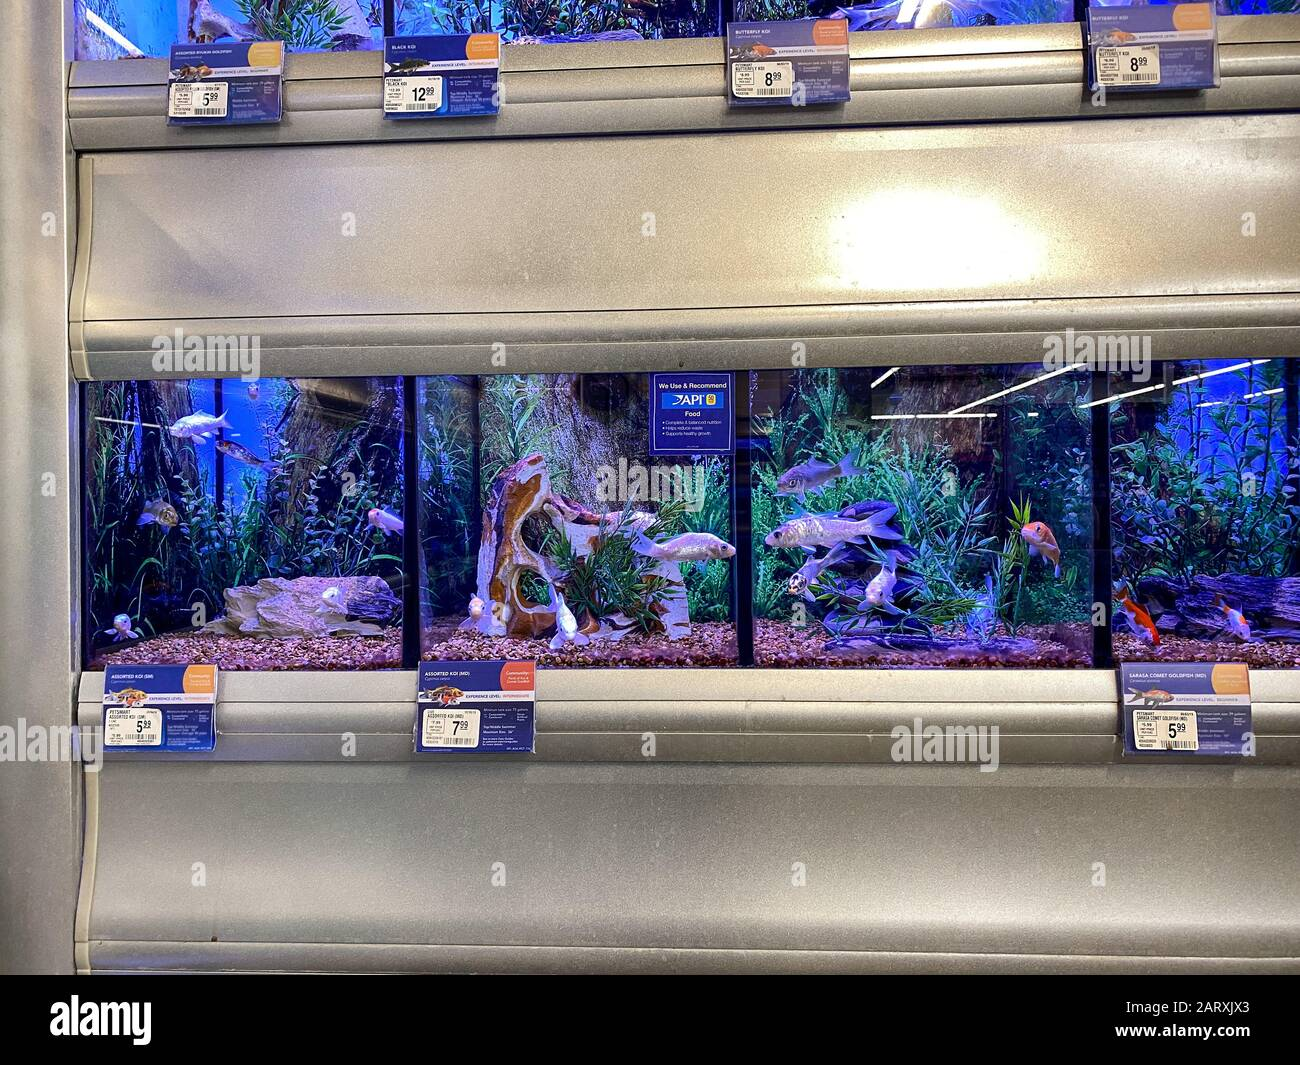 Orlando Fl Usa 1 28 20 Koi And Goldfish In An Aquarium For Sale At A Petsmart Pet Superstore Stock Photo Alamy